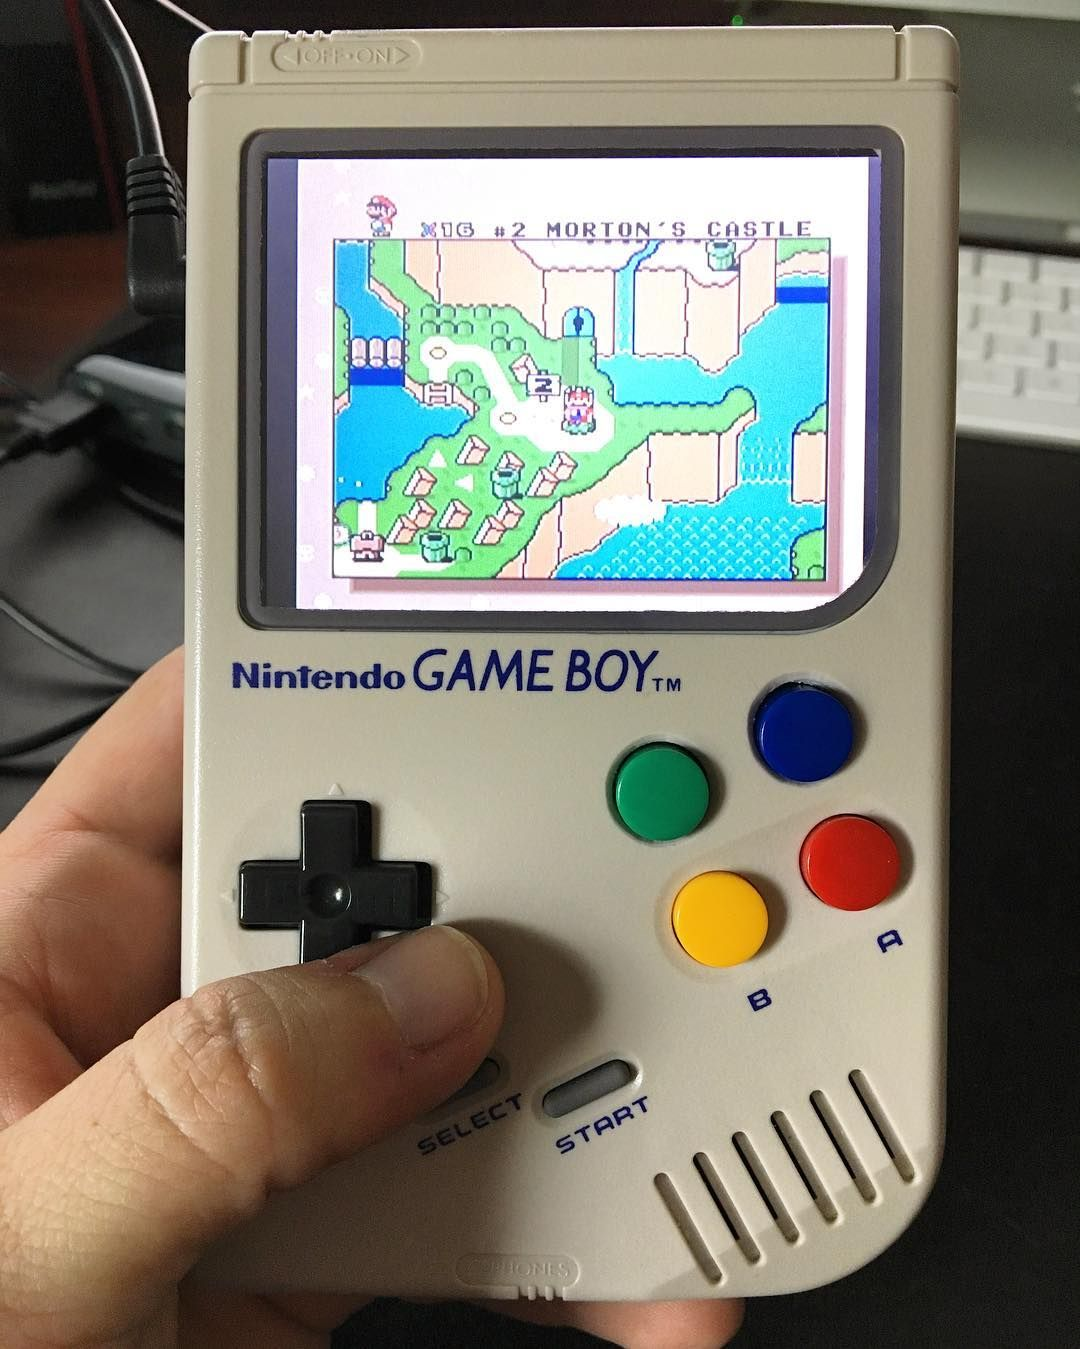 Behold the GameBoy Zero! A Raspberry Pi Zero-powered